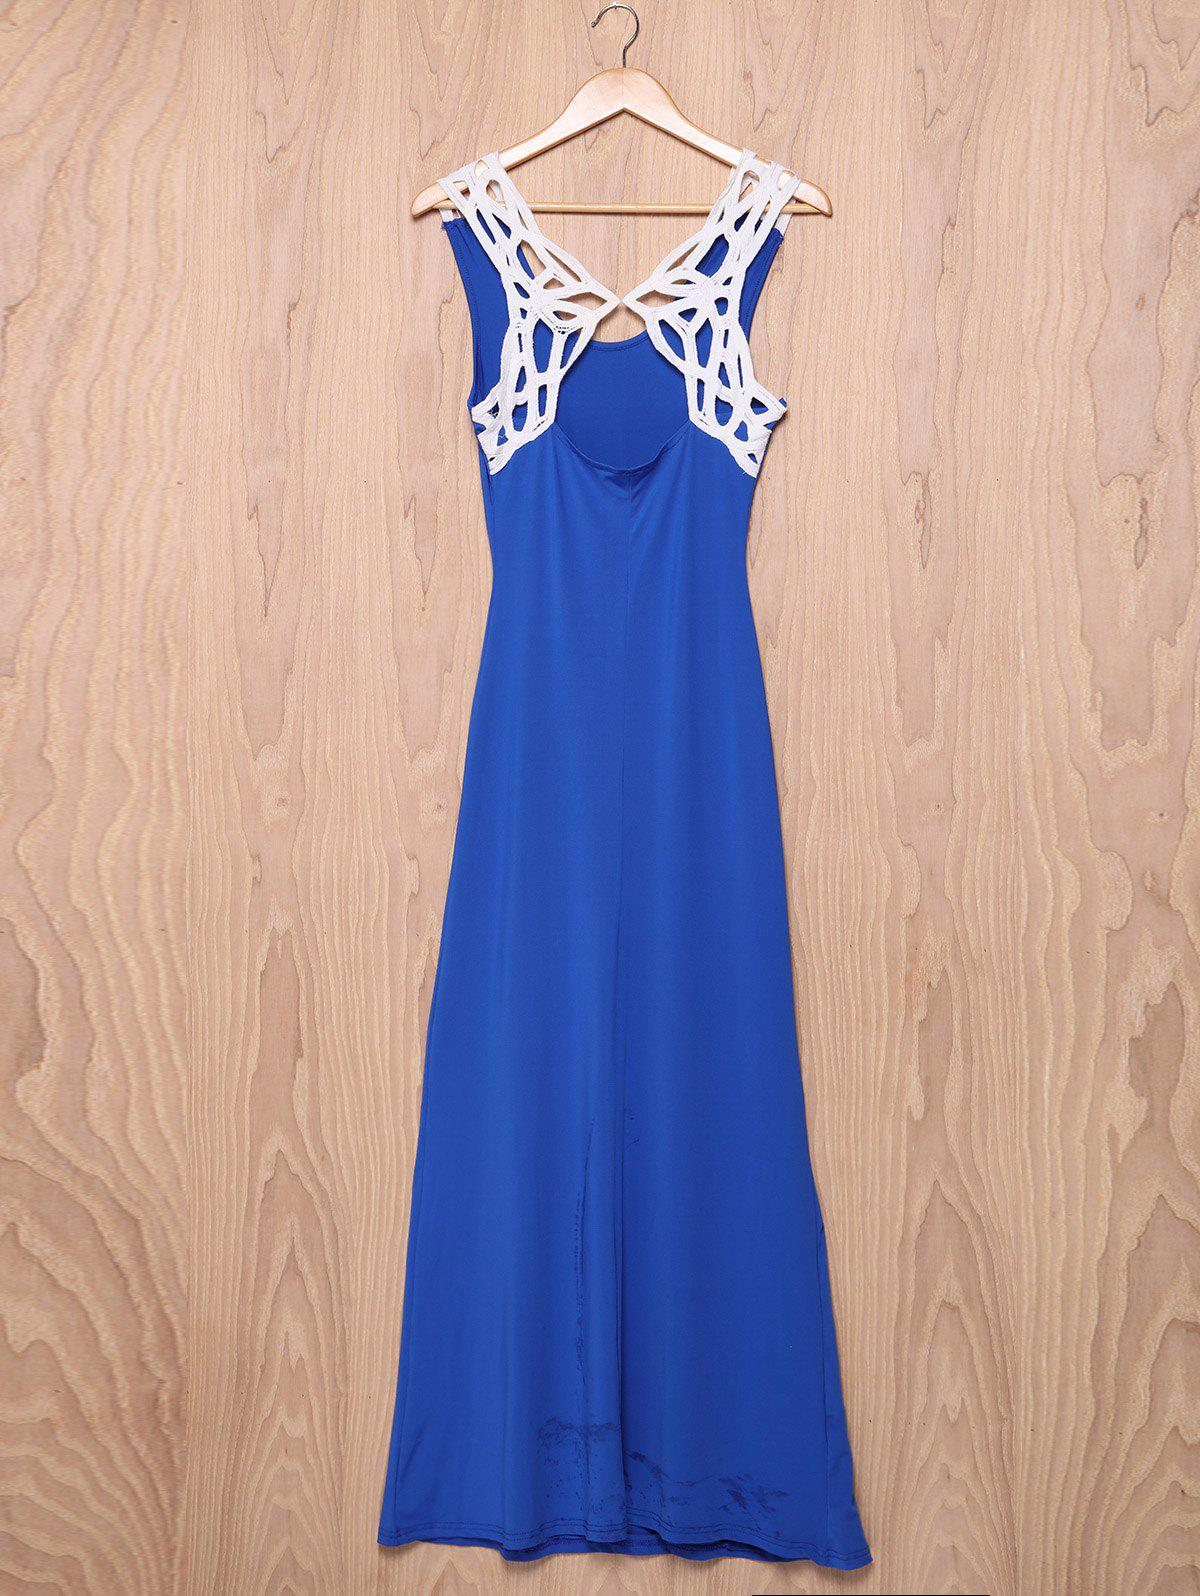 Trendy Sleeveless Scoop Neck Hollow Out Lace Spliced Women's Dress - BLUE XL